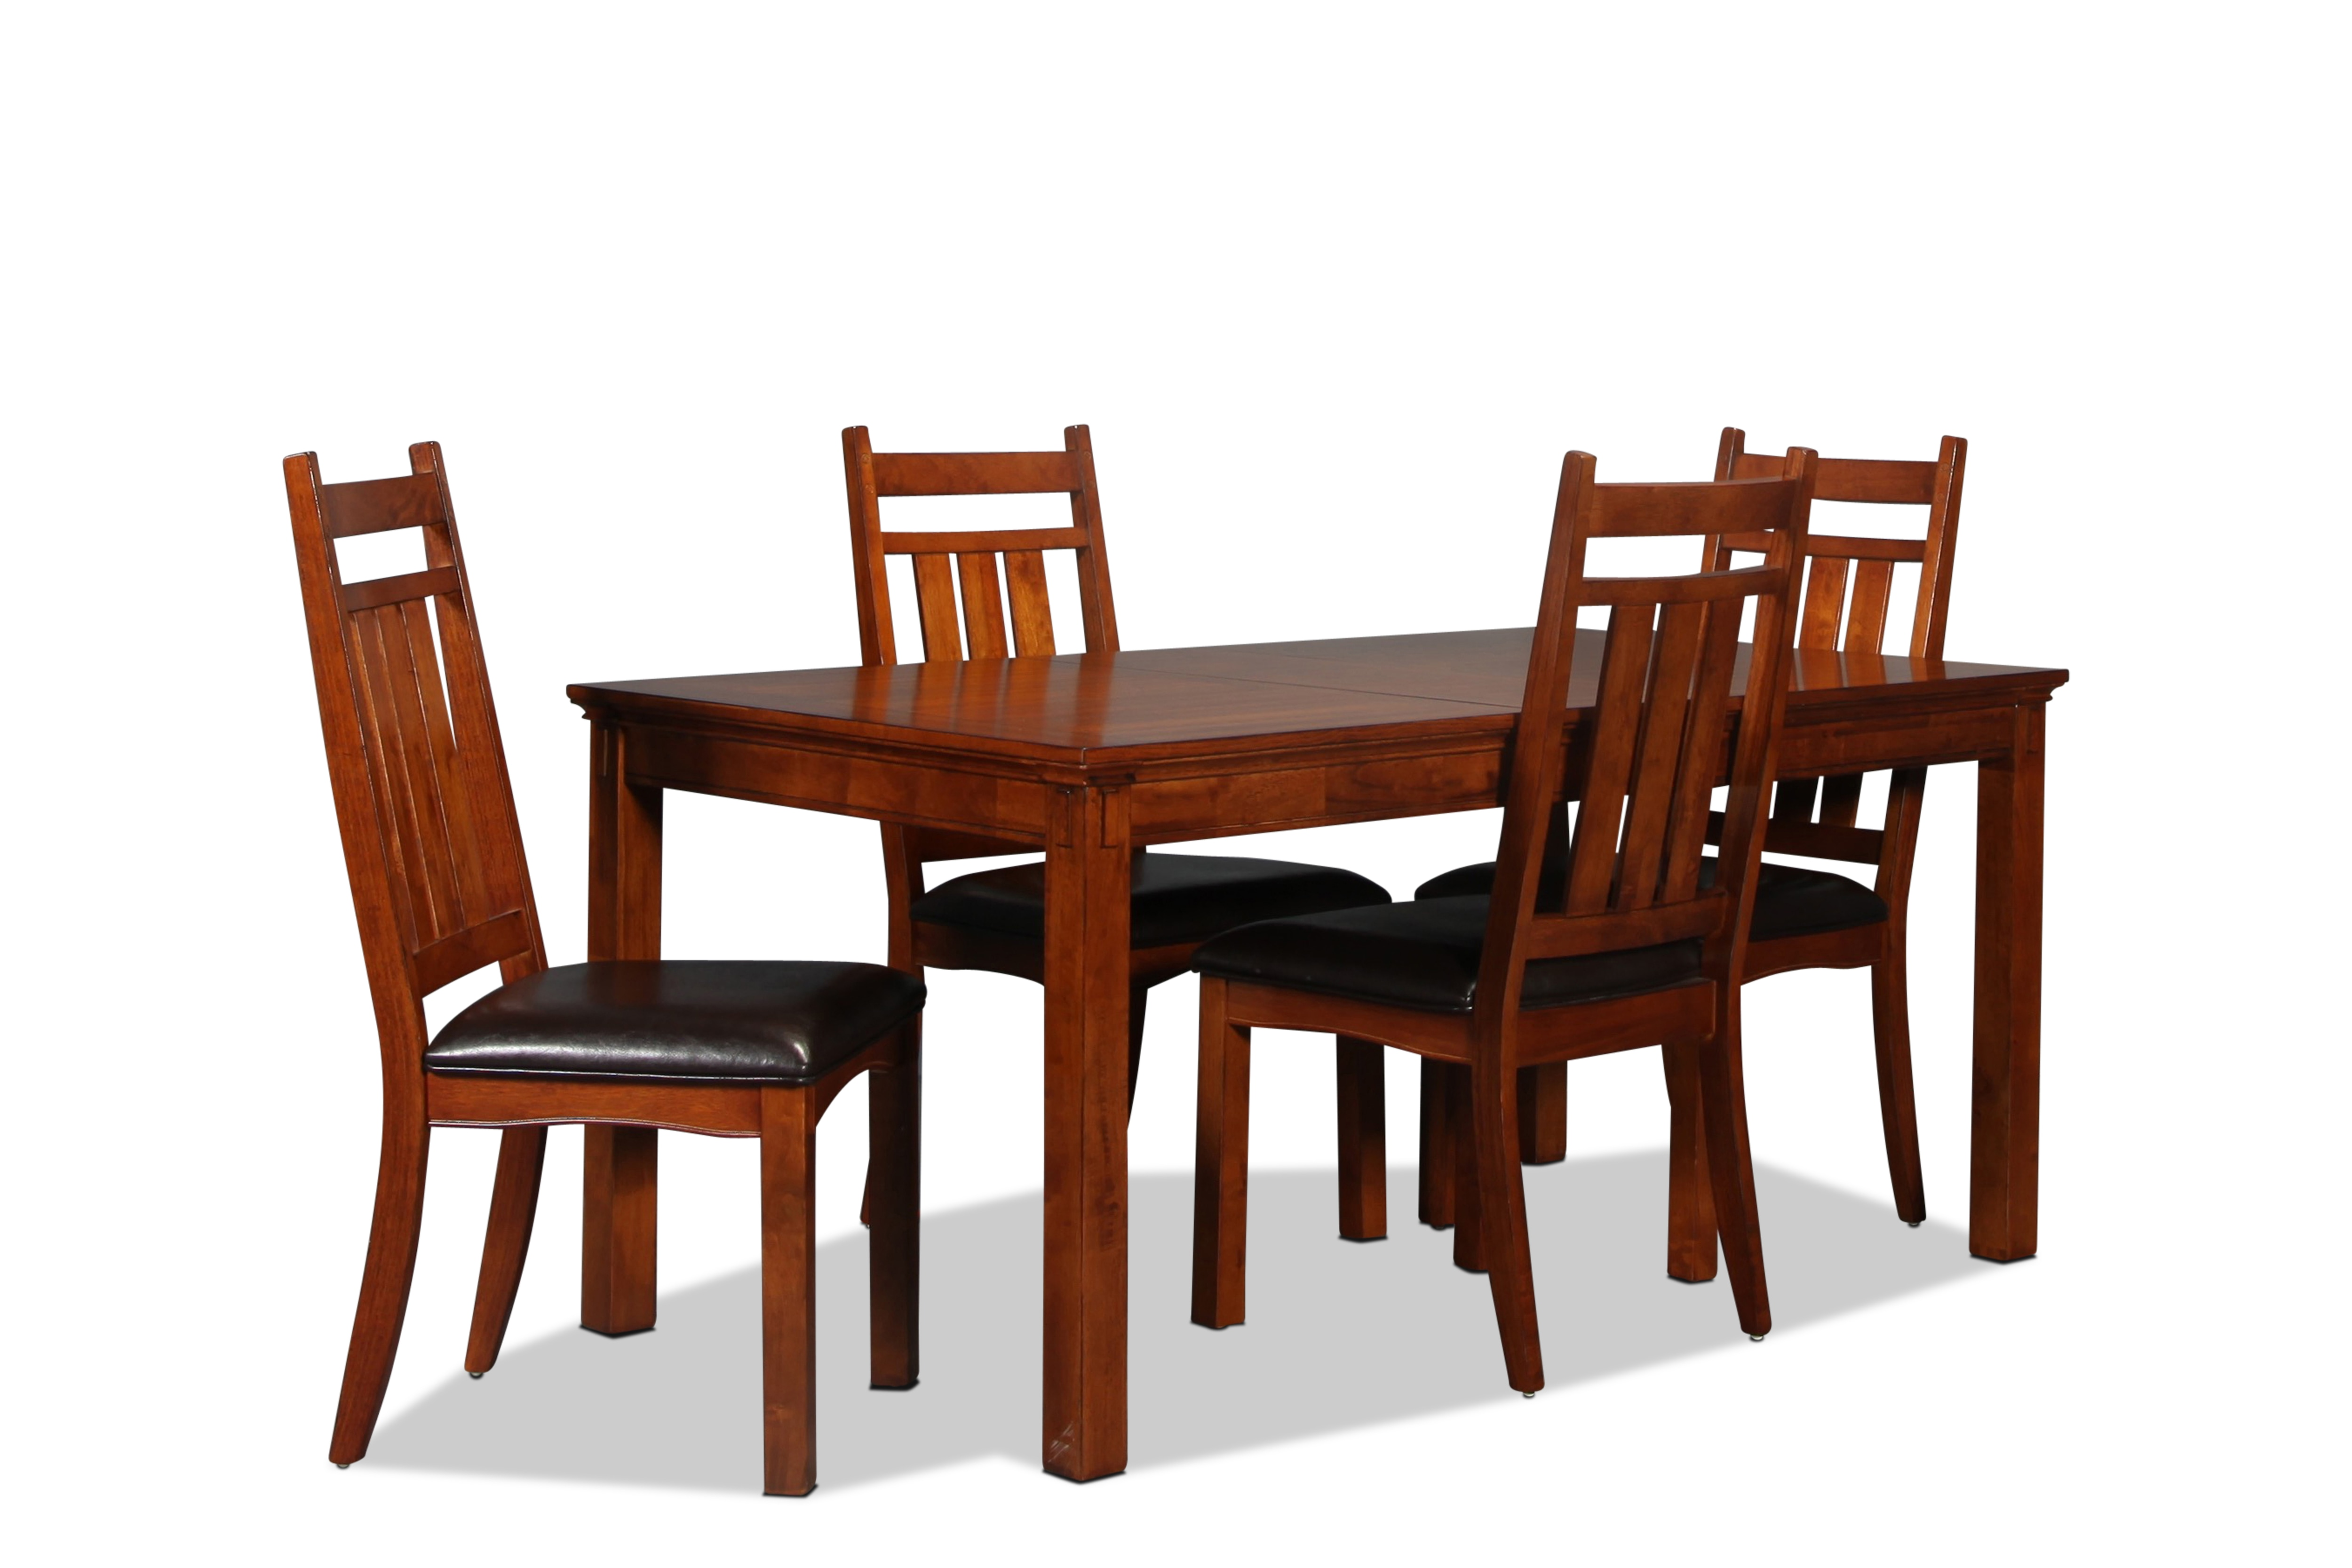 Jasper Table and 4 Side Chairs - Chestnut